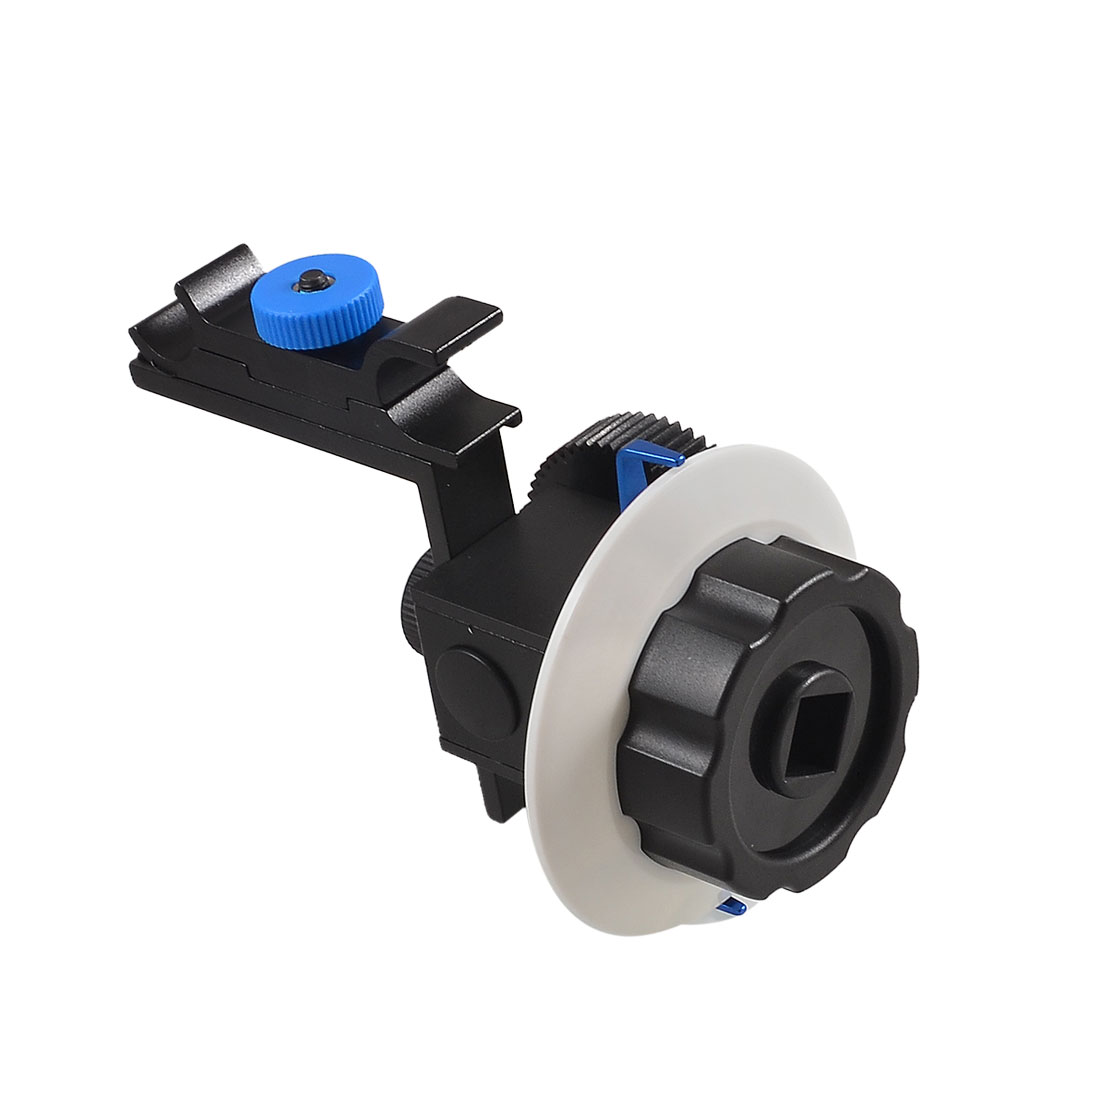 Quick Release DSLR Camera Follow Focus for 15mm Rod Support